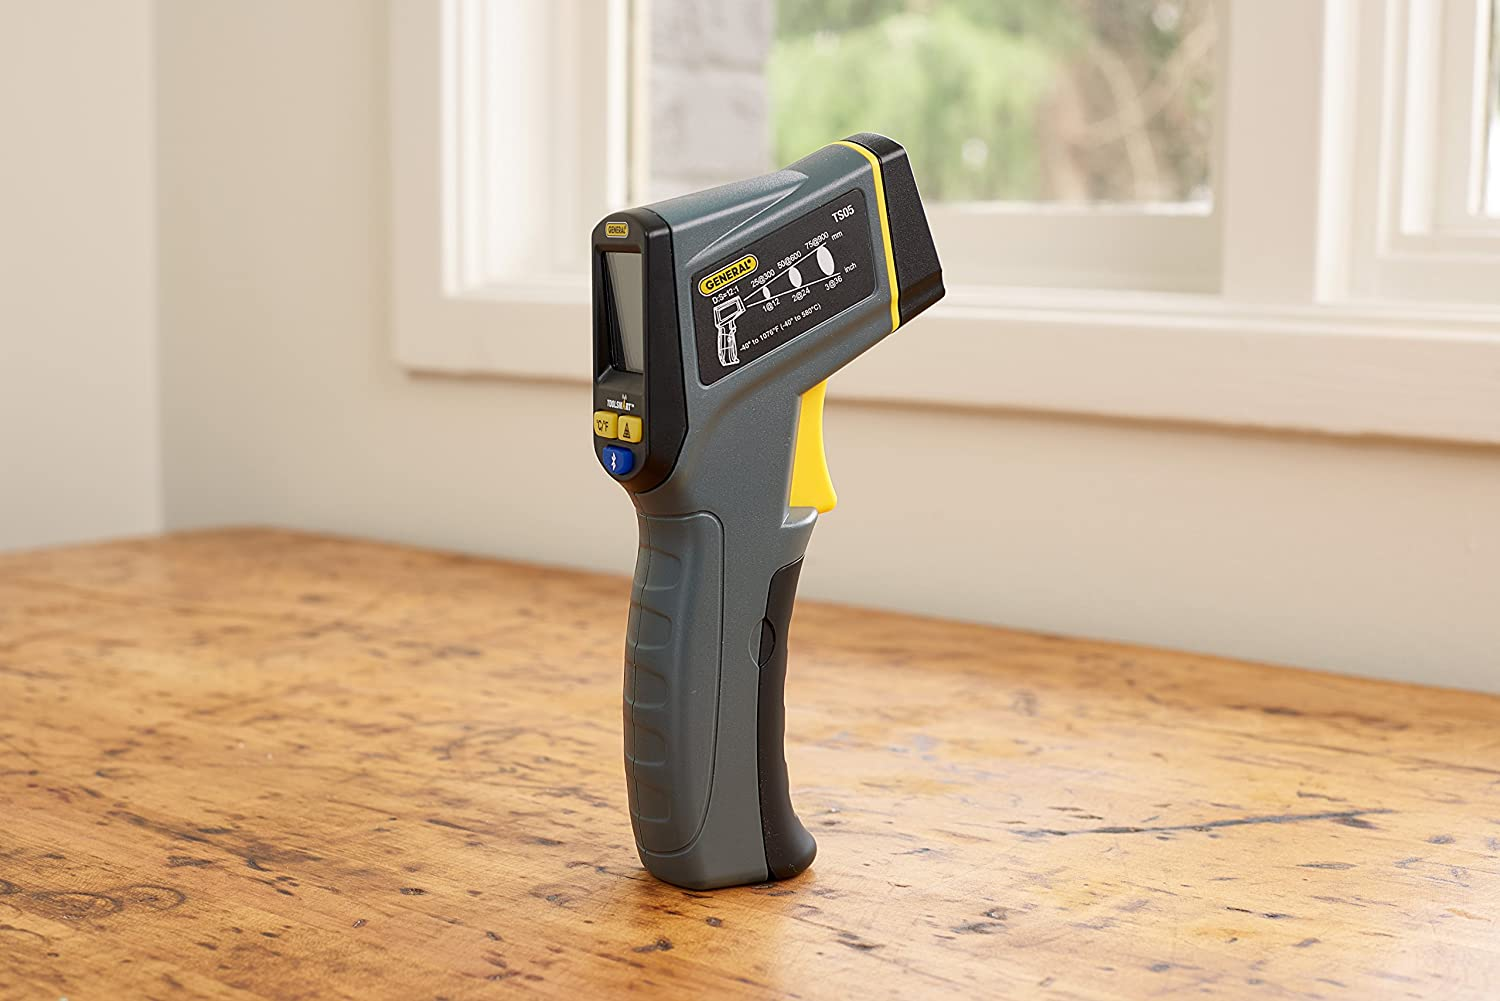 1 General Tools TS05 ToolSmart Bluetooth Connected Laser Temperature Gun Digital Infrared Thermometer Thermal Detector